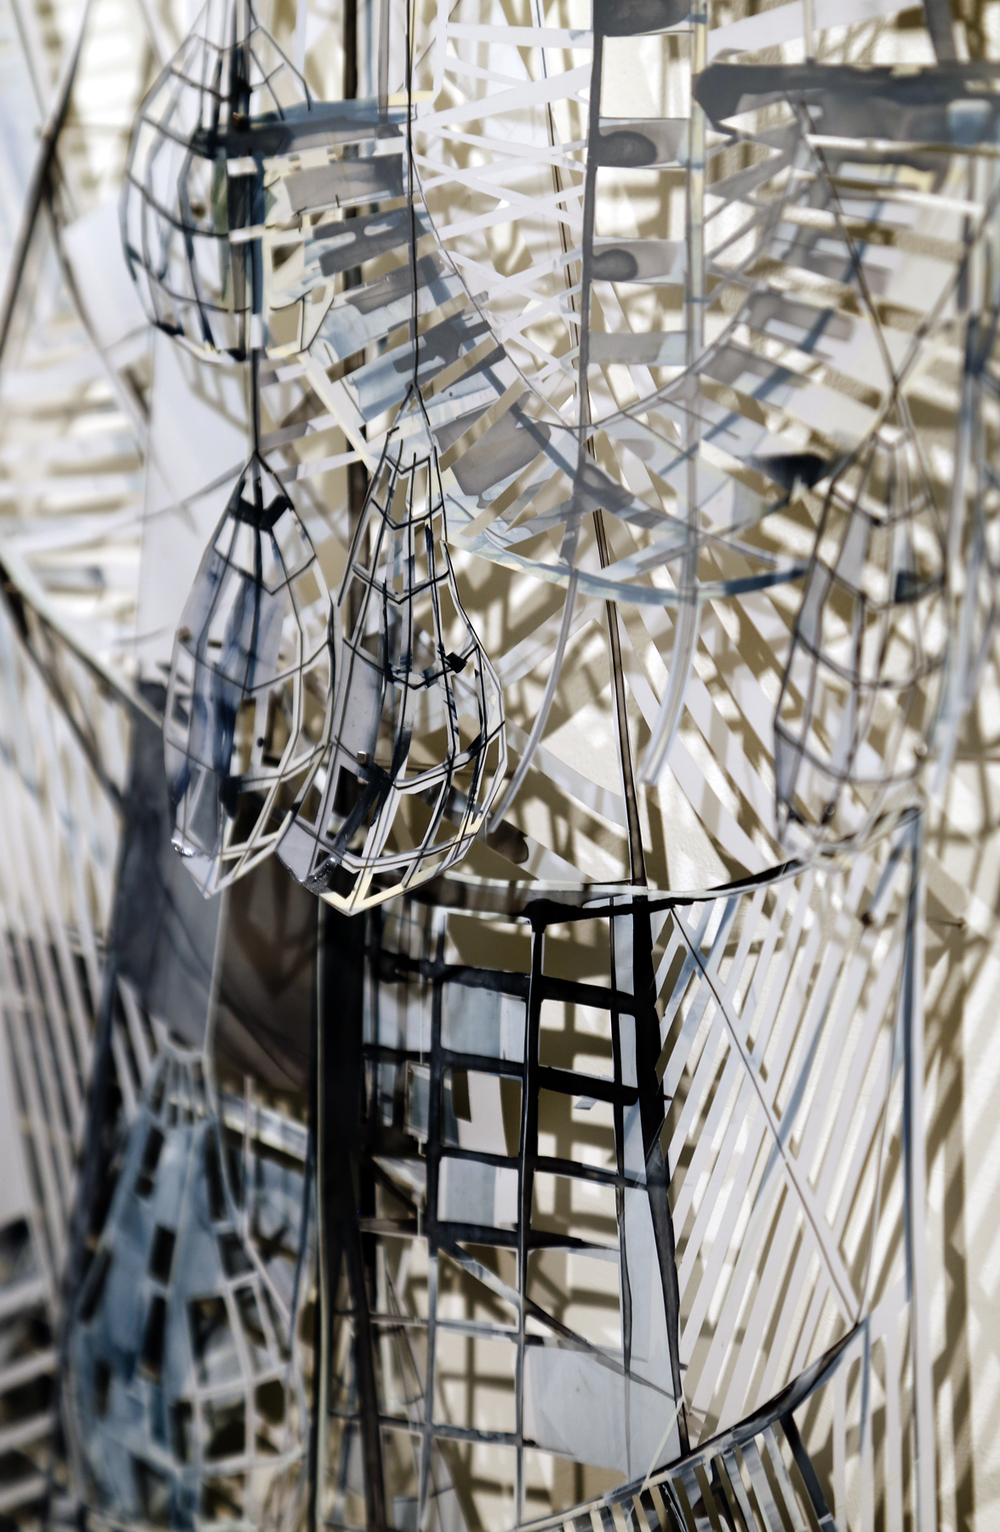 Invisible Cities - Thin City (detail)